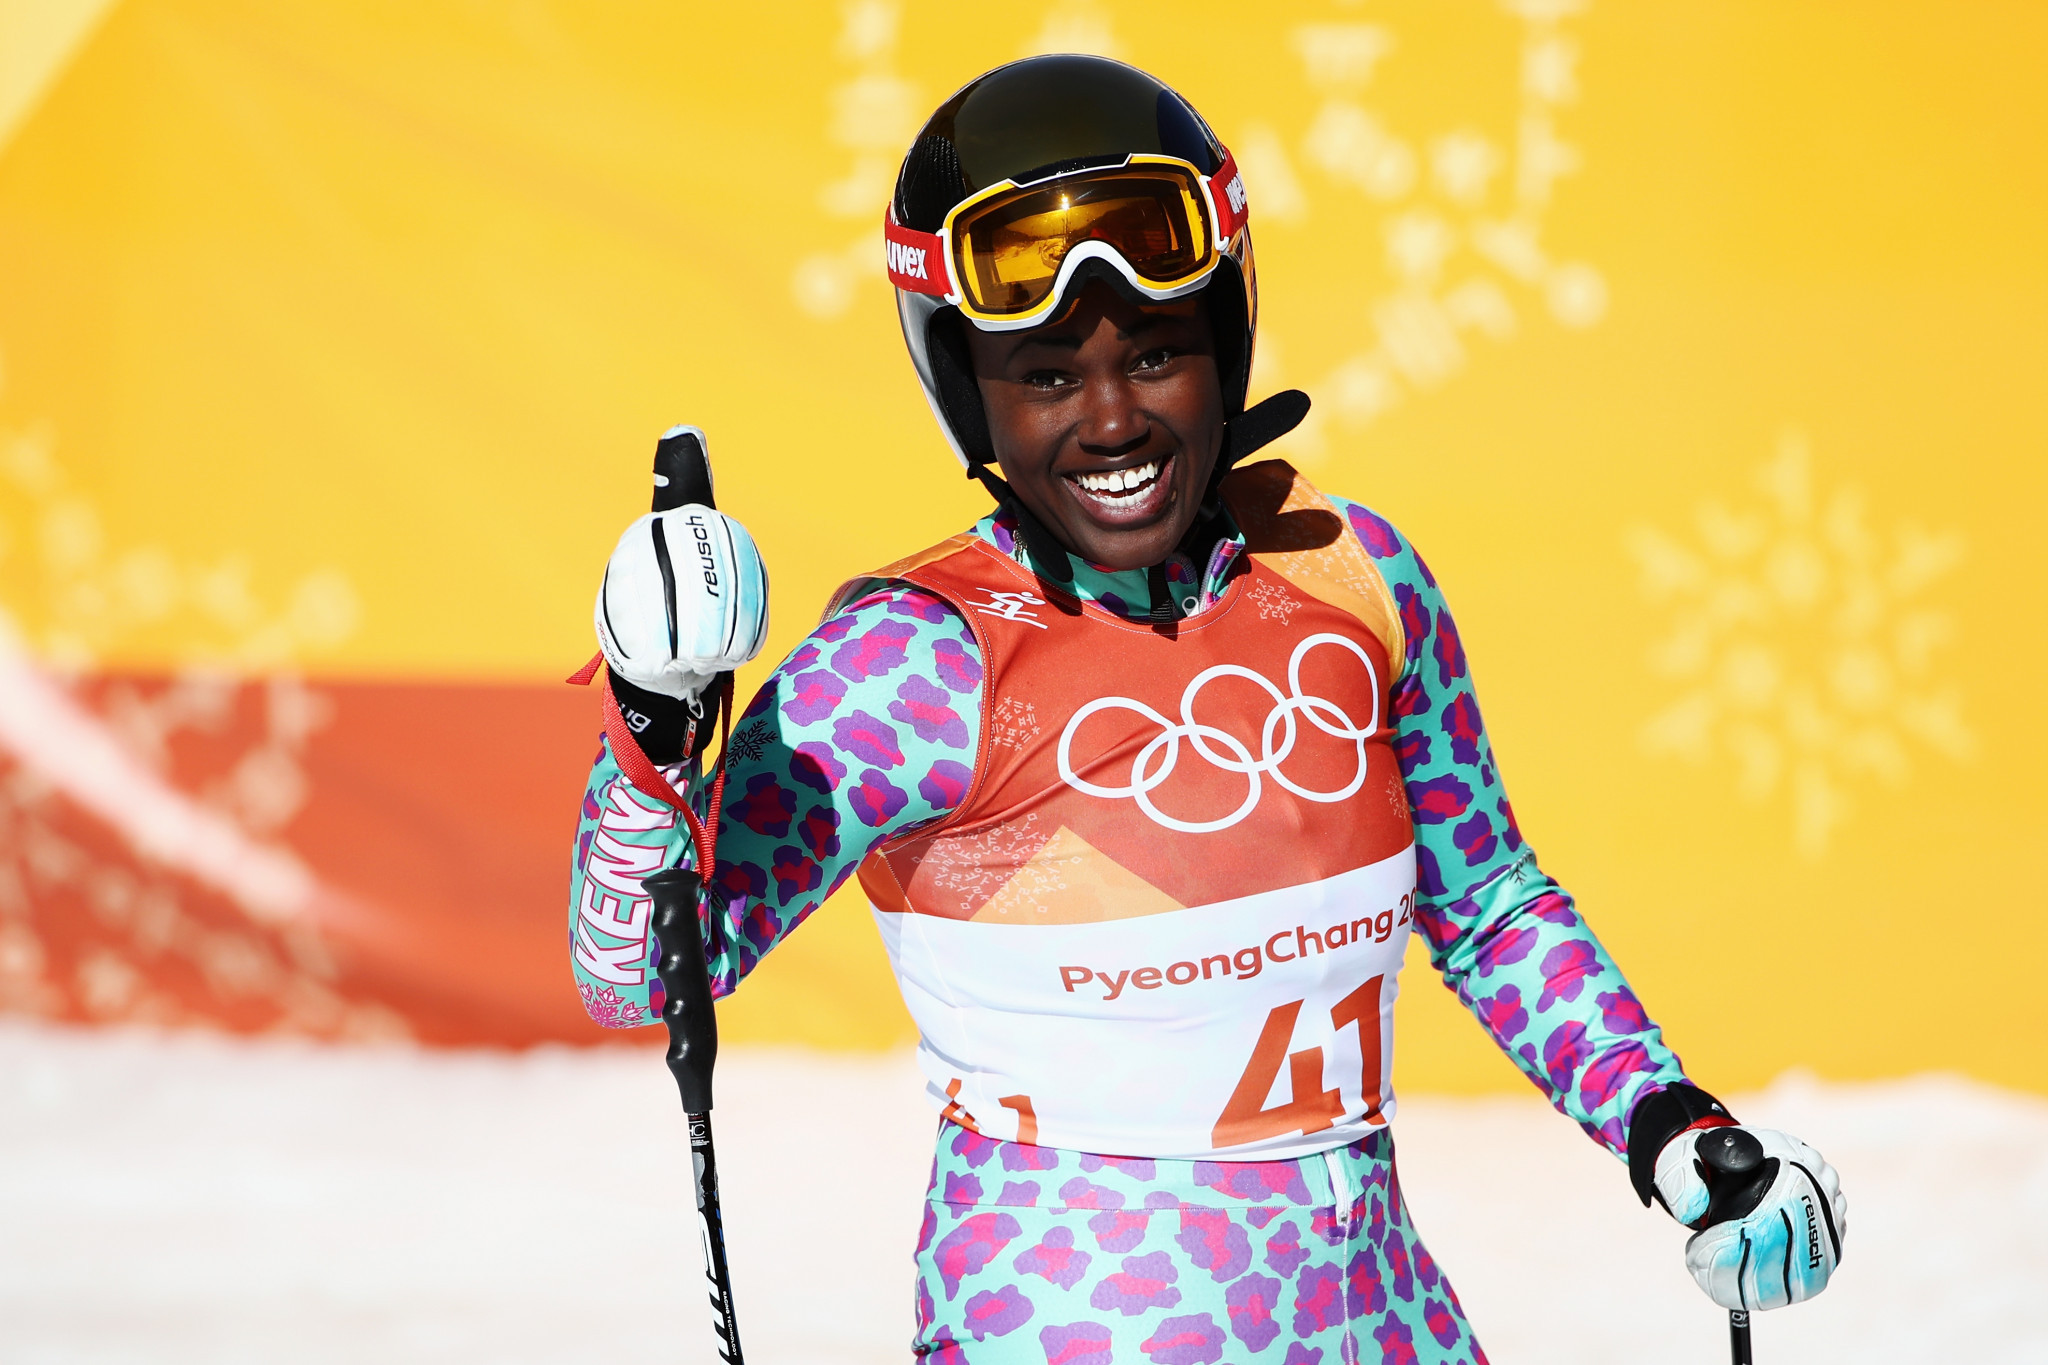 Alpine skier Sabrina Wanjiku Simader has received a boost in her bid to compete at the 2022 Winter Olympics in Beijing ©Getty Images